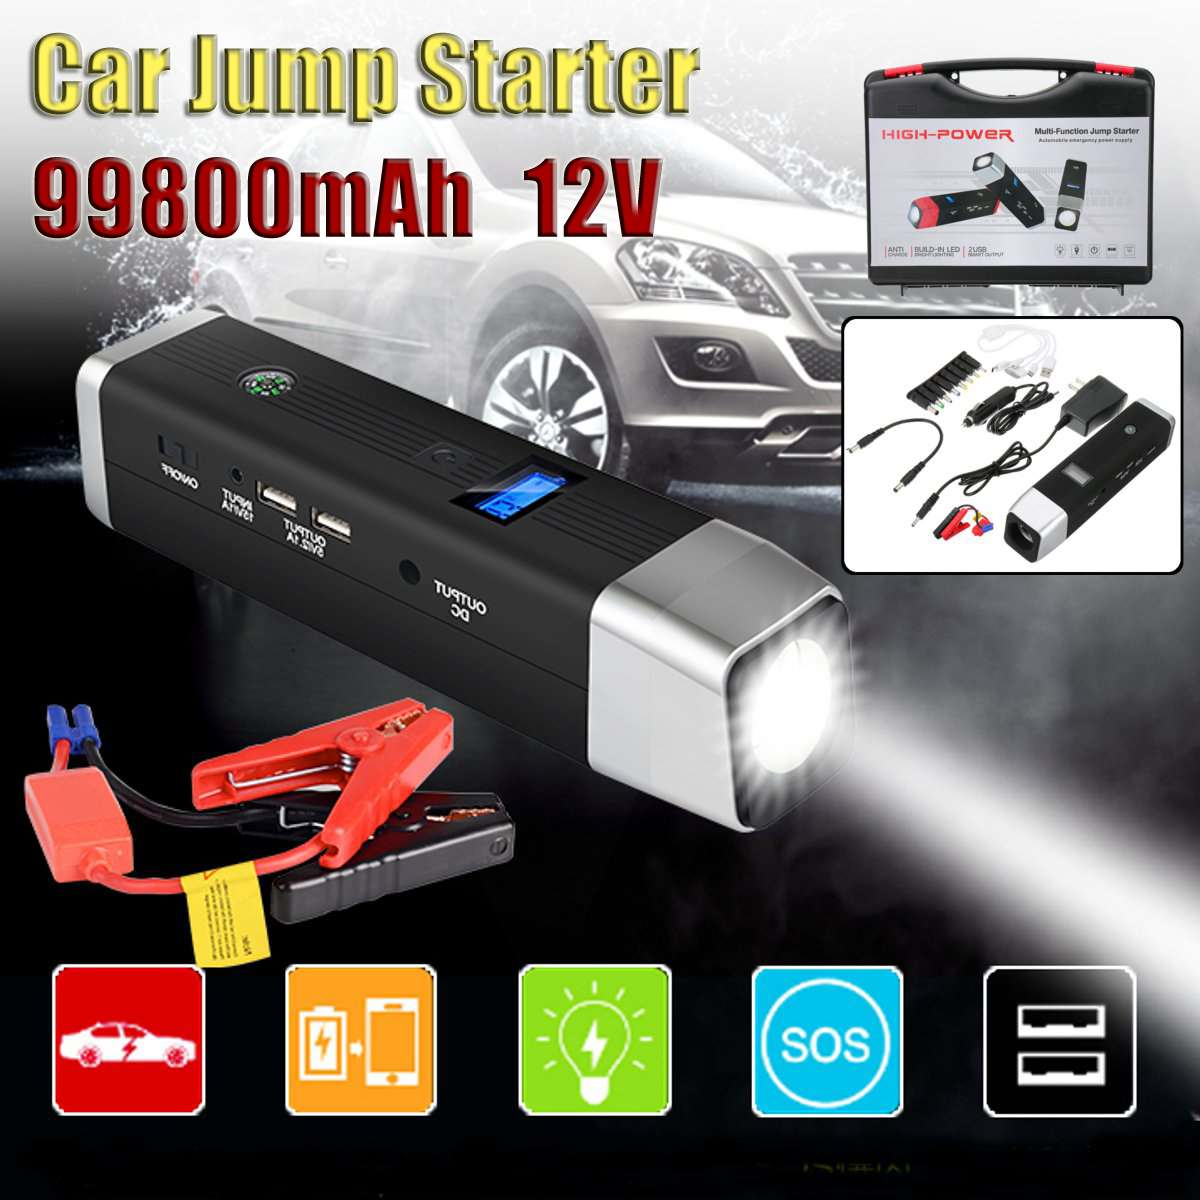 12V 600A Emergency Car Jump Starter High Power Portable Power Bank Vehicle Battery Charger Startup Power for car Starting Device12V 600A Emergency Car Jump Starter High Power Portable Power Bank Vehicle Battery Charger Startup Power for car Starting Device